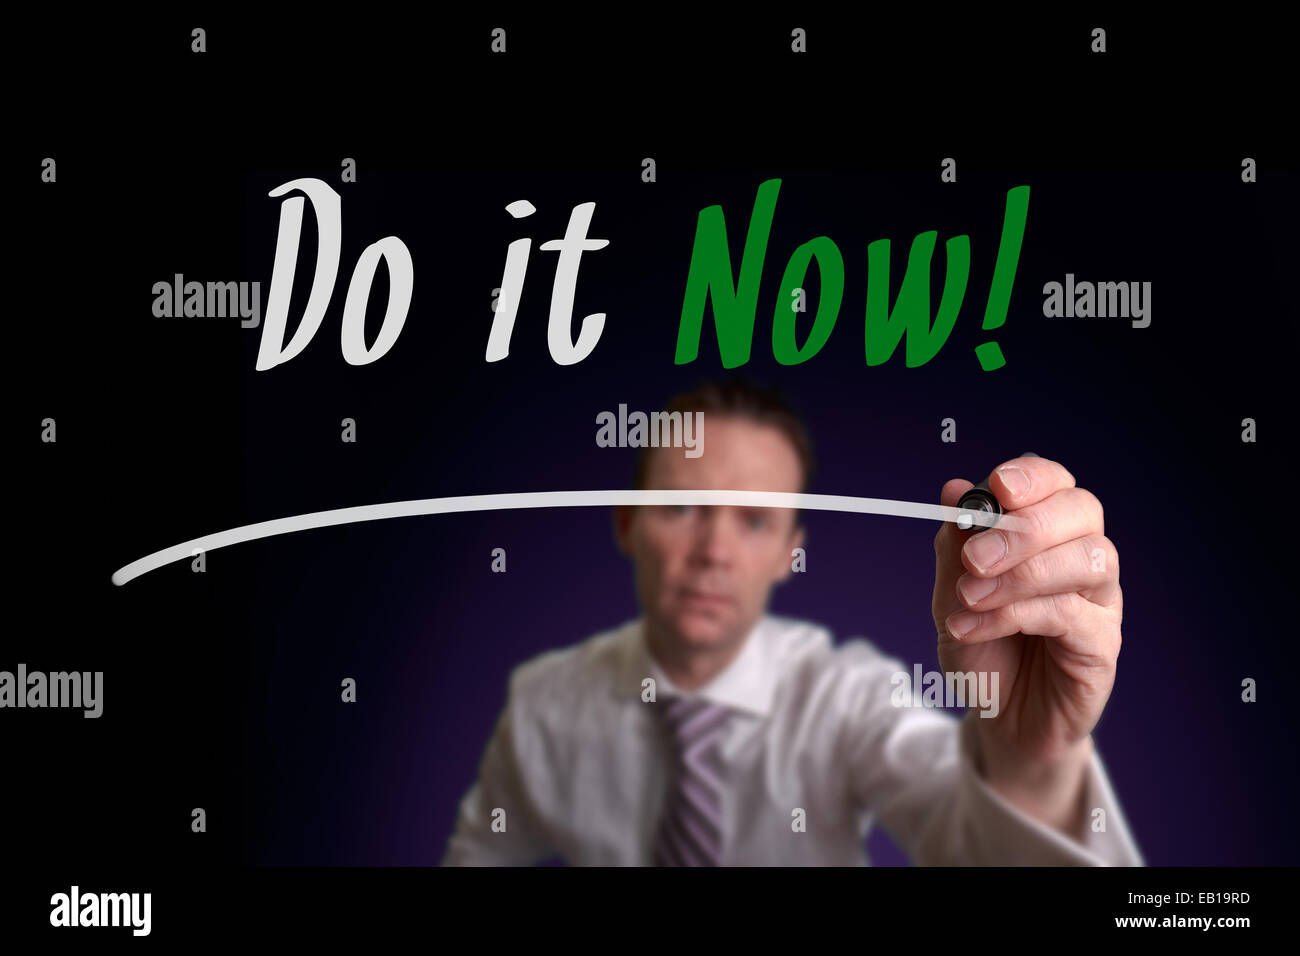 A businessman writing Do it Now on a screen. Business Concept. - Stock Image